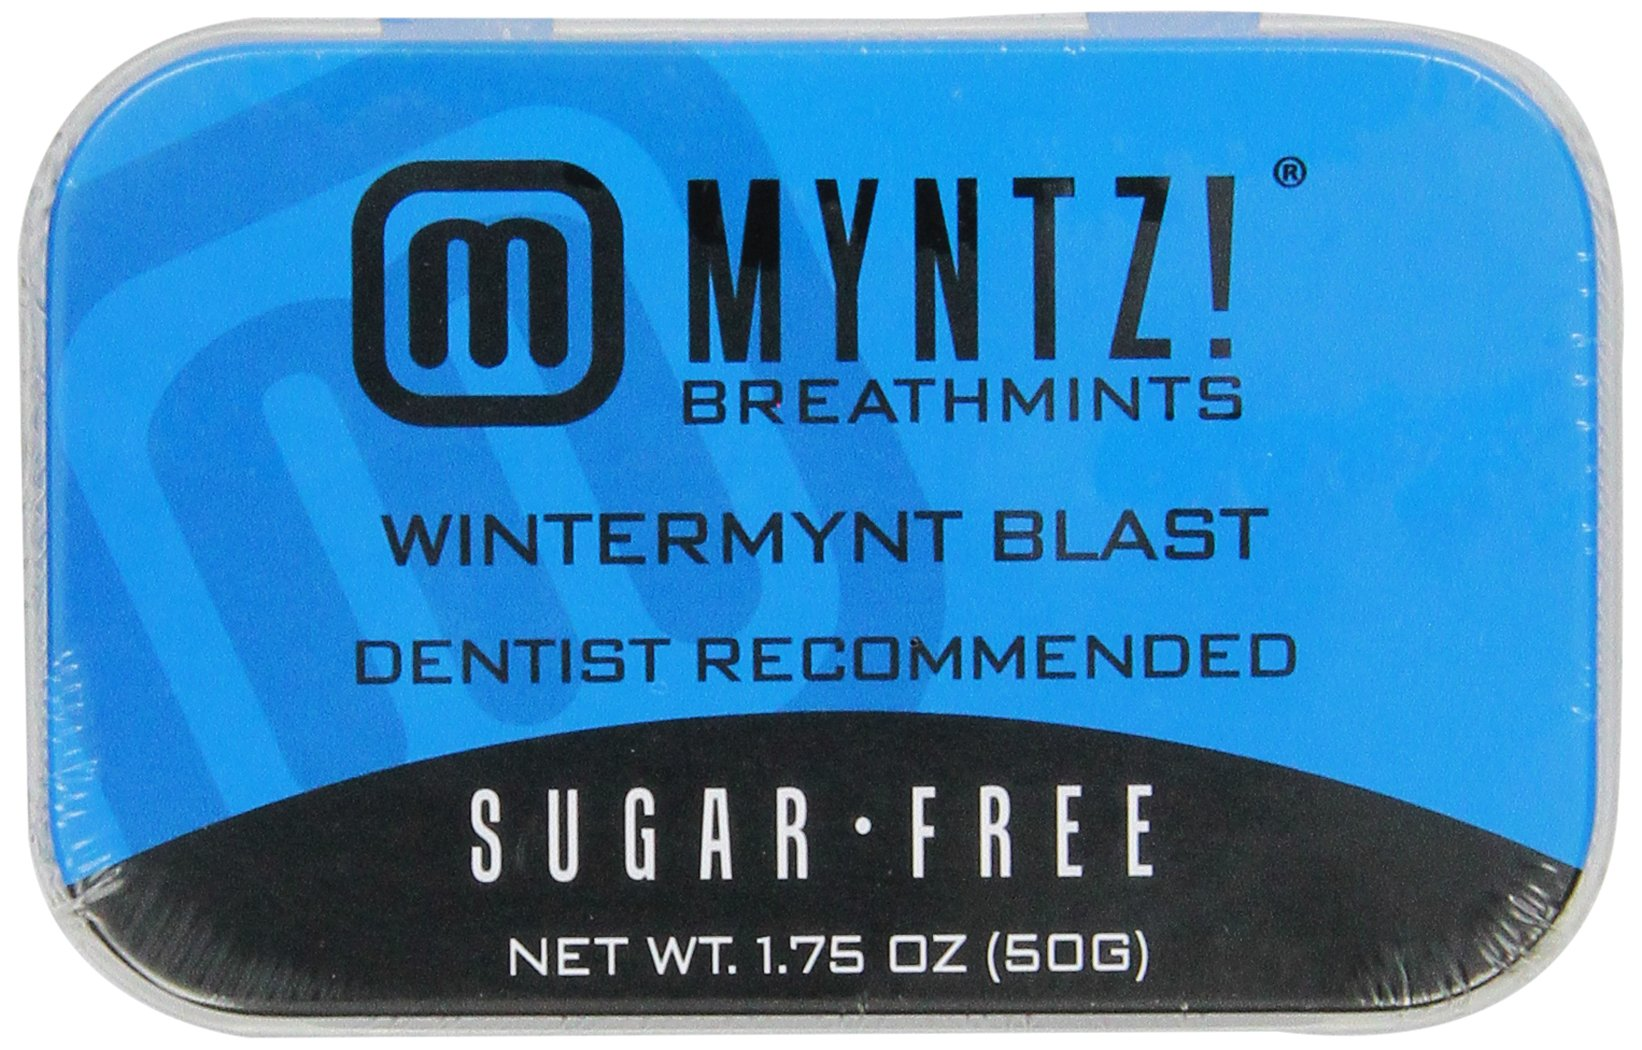 Myntz Wintermynt Blast Breathmints, 1.75-Ounce Containers (Pack of 12) by Myntz